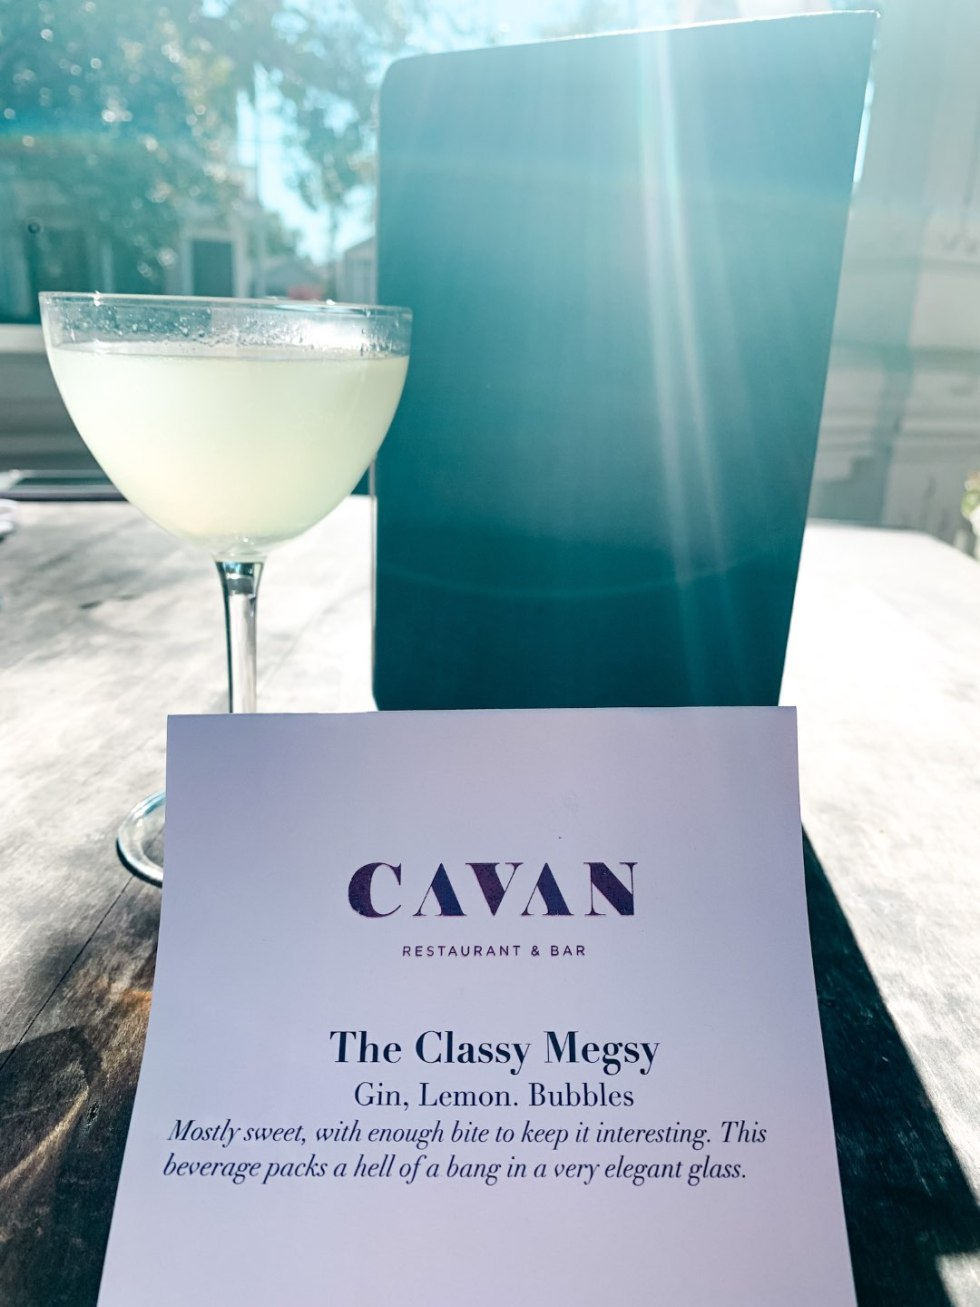 Girls Trip to New Orleans by popular US travel blog, I'm Fixin To: image of a Cavan restaurant menu.